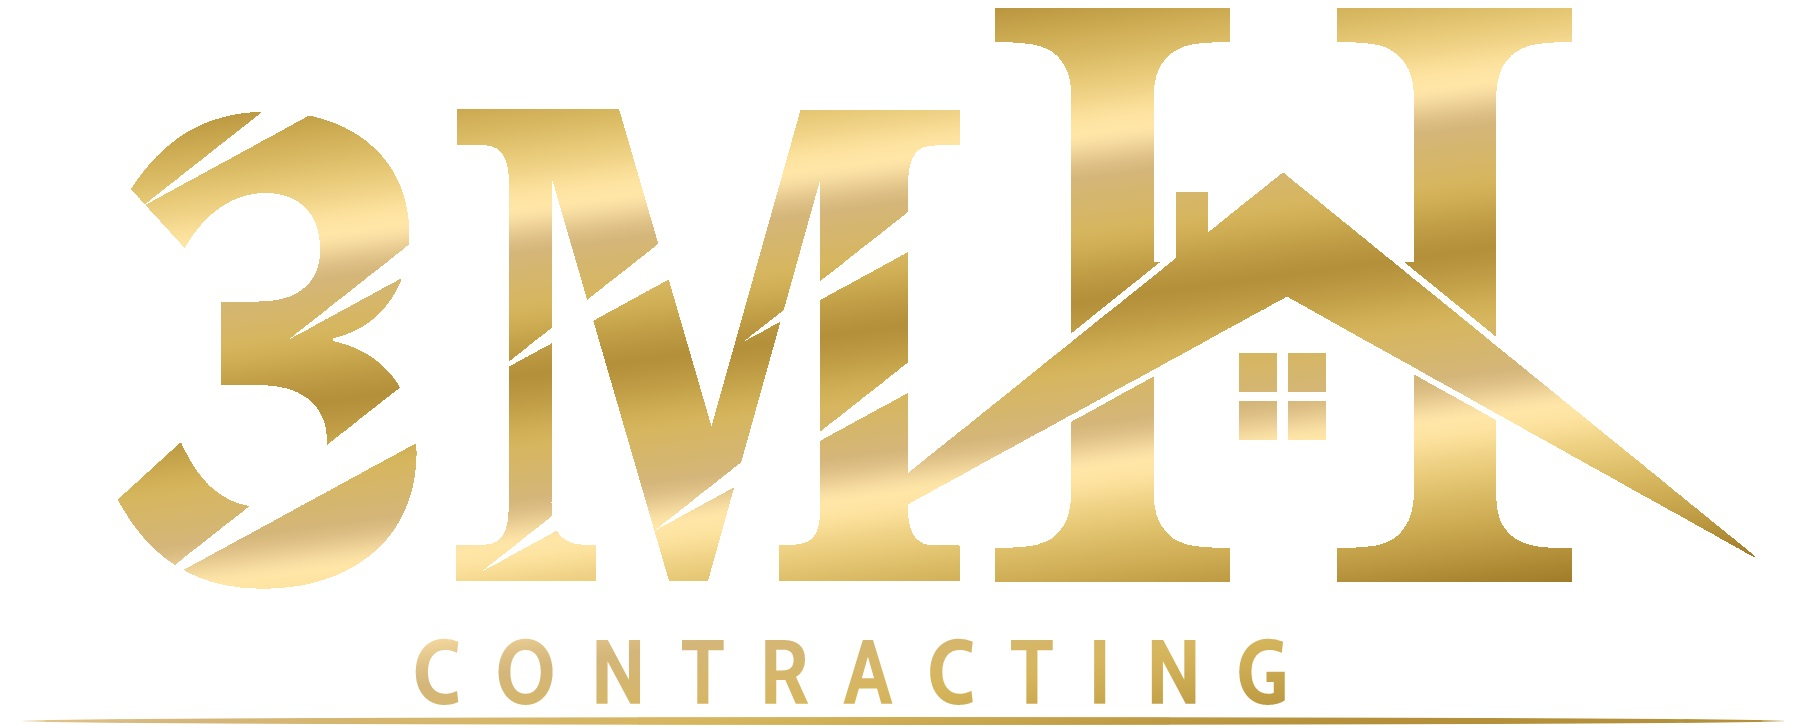 3MH-Contracting